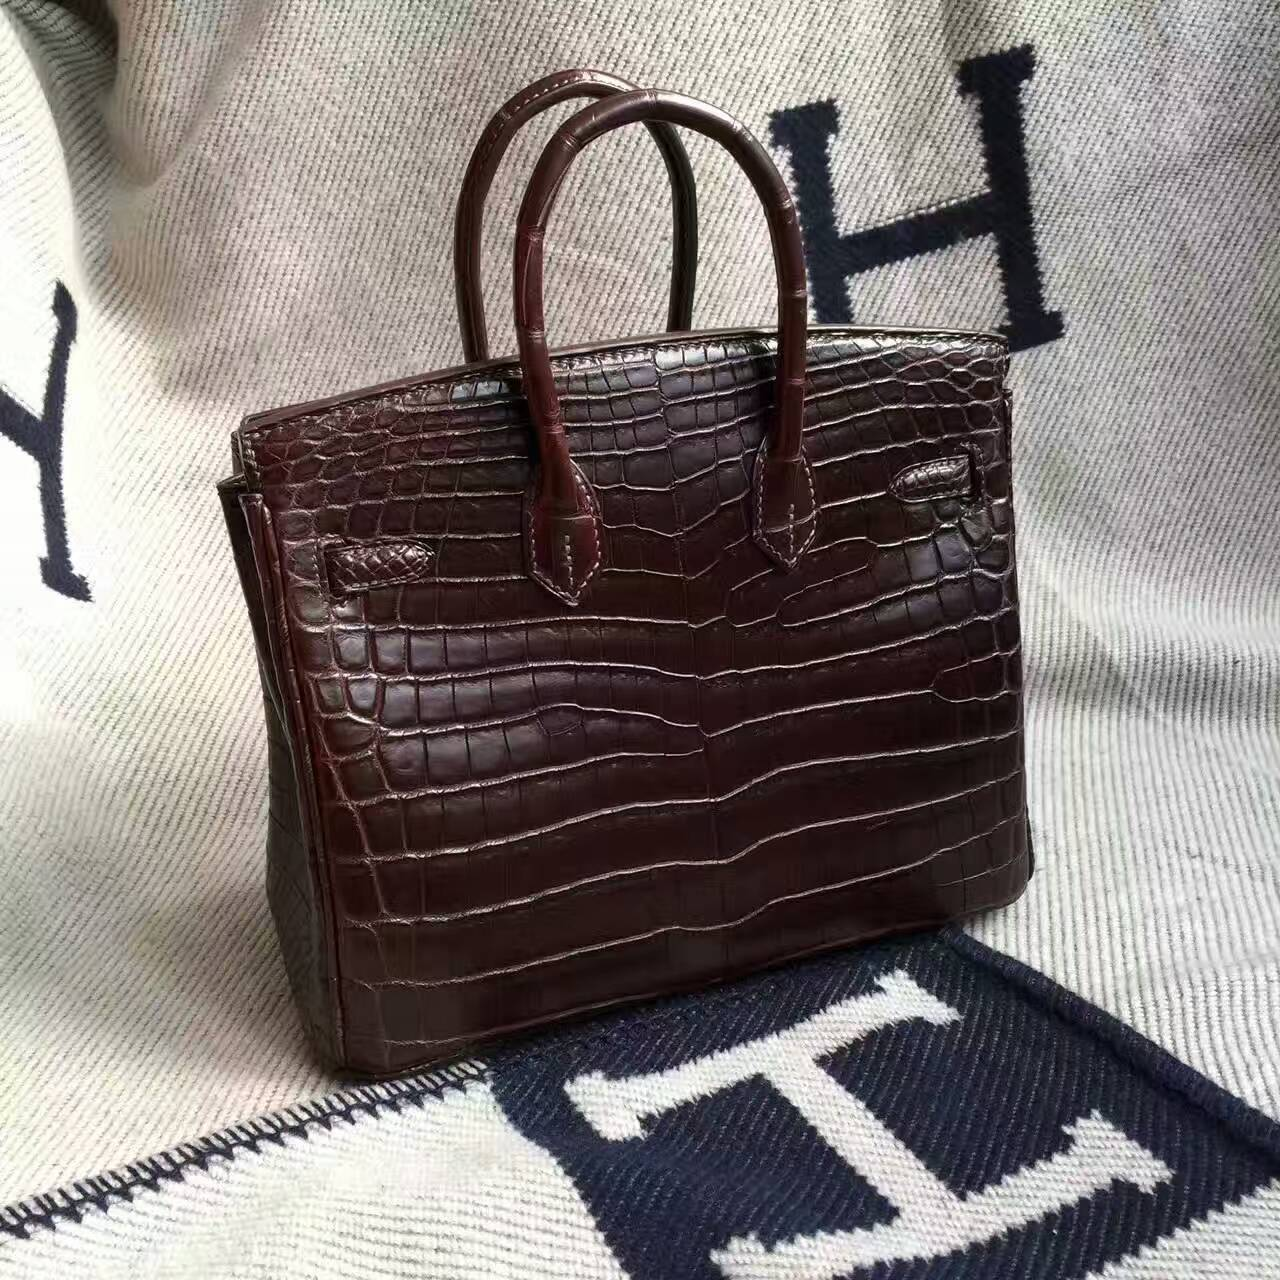 Sale Hermes Crocodile Matt Leather Birkin Bag 25cm in Chocolate Color